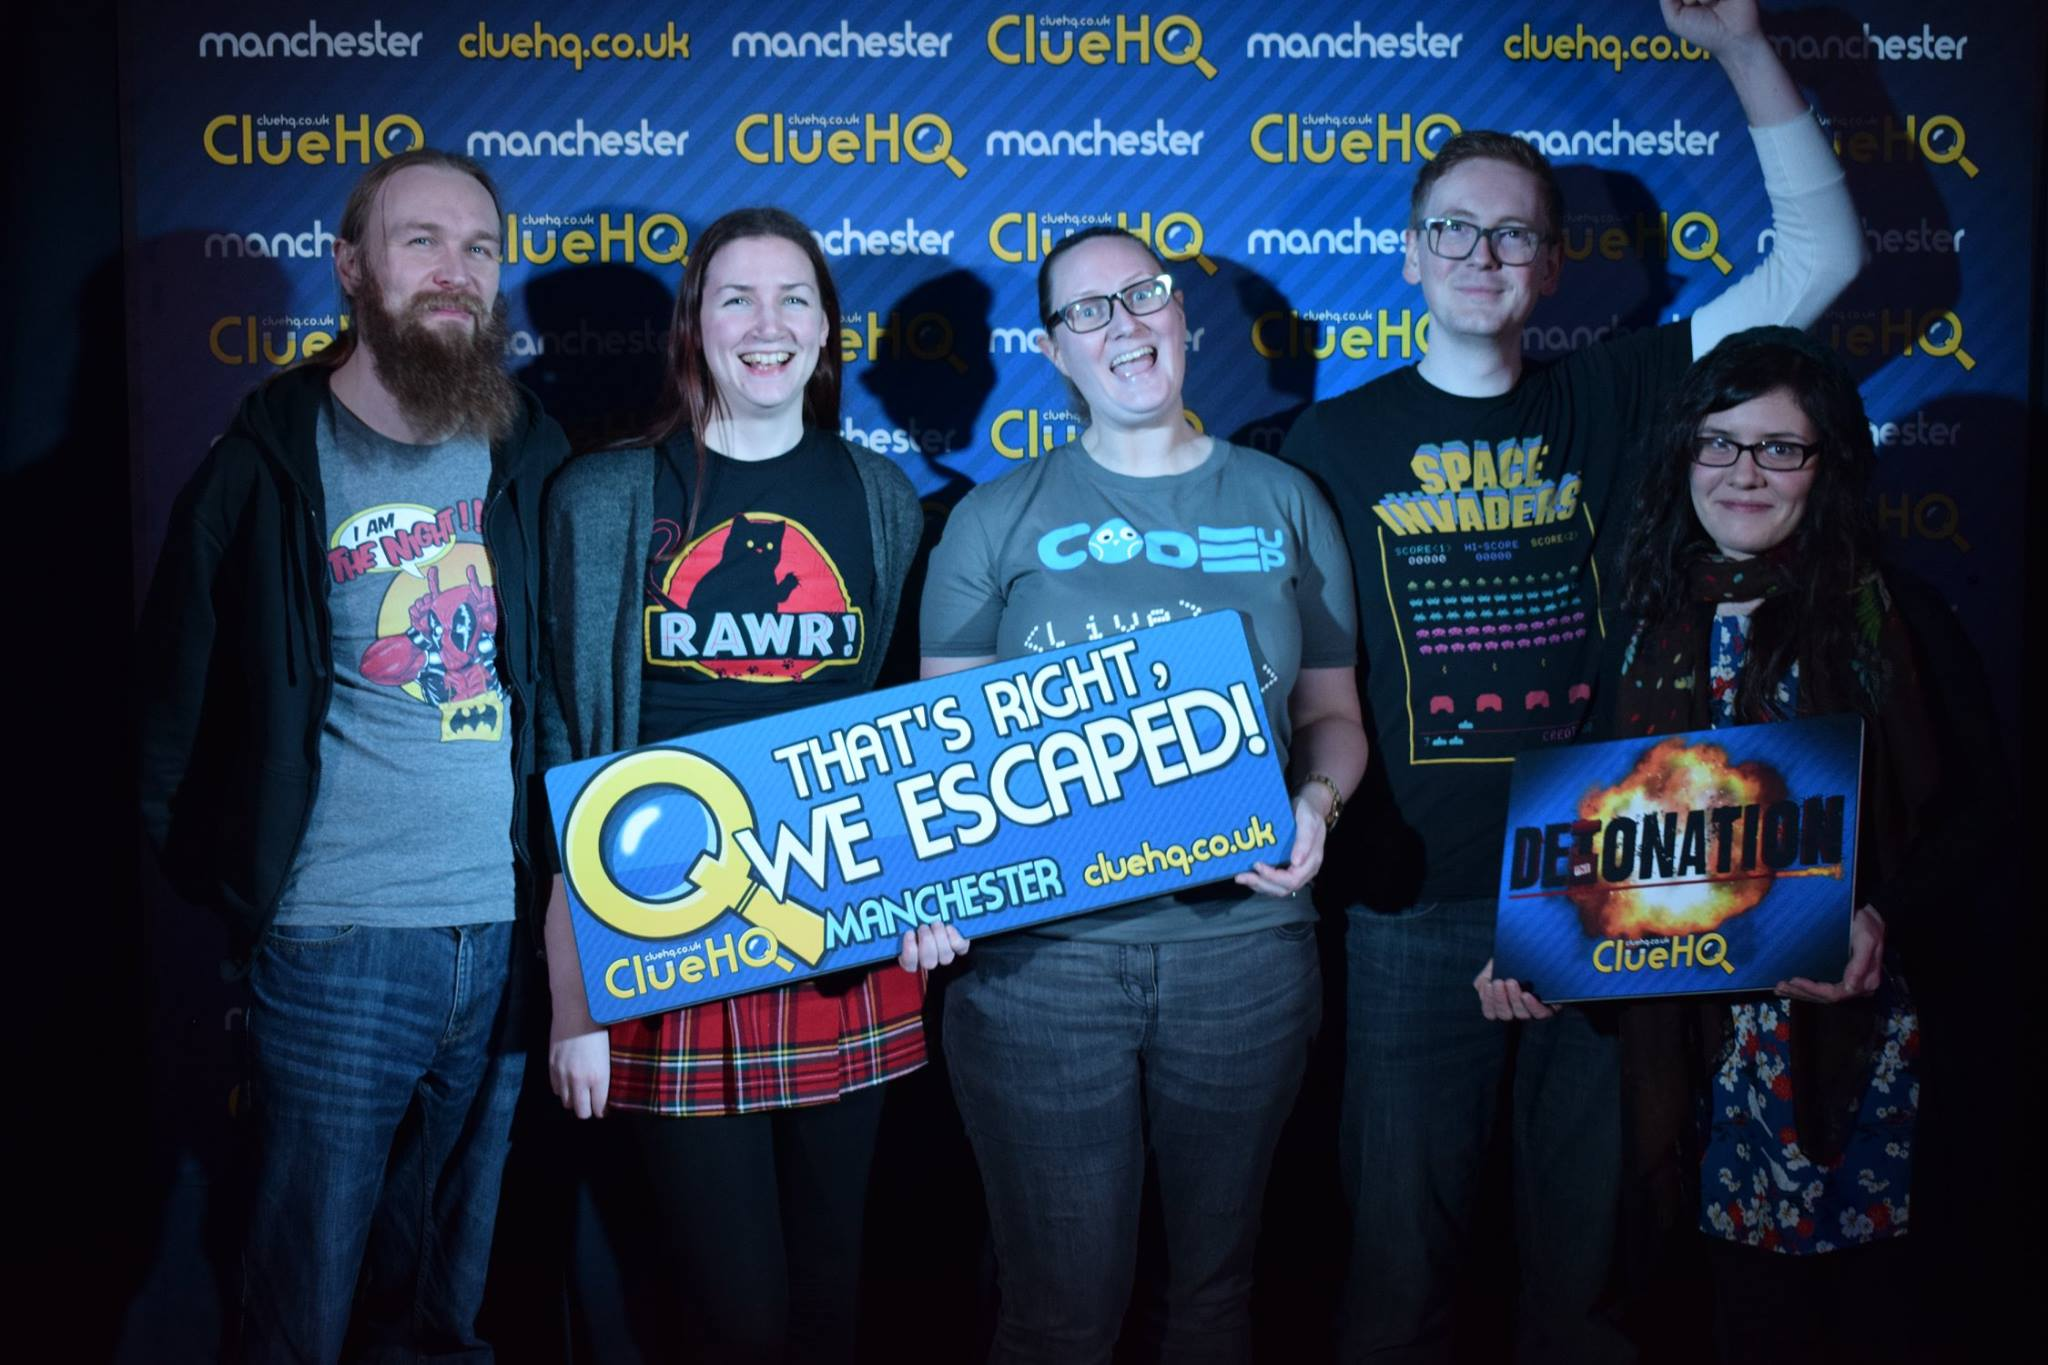 Clue HQ, Manchester – Detonation